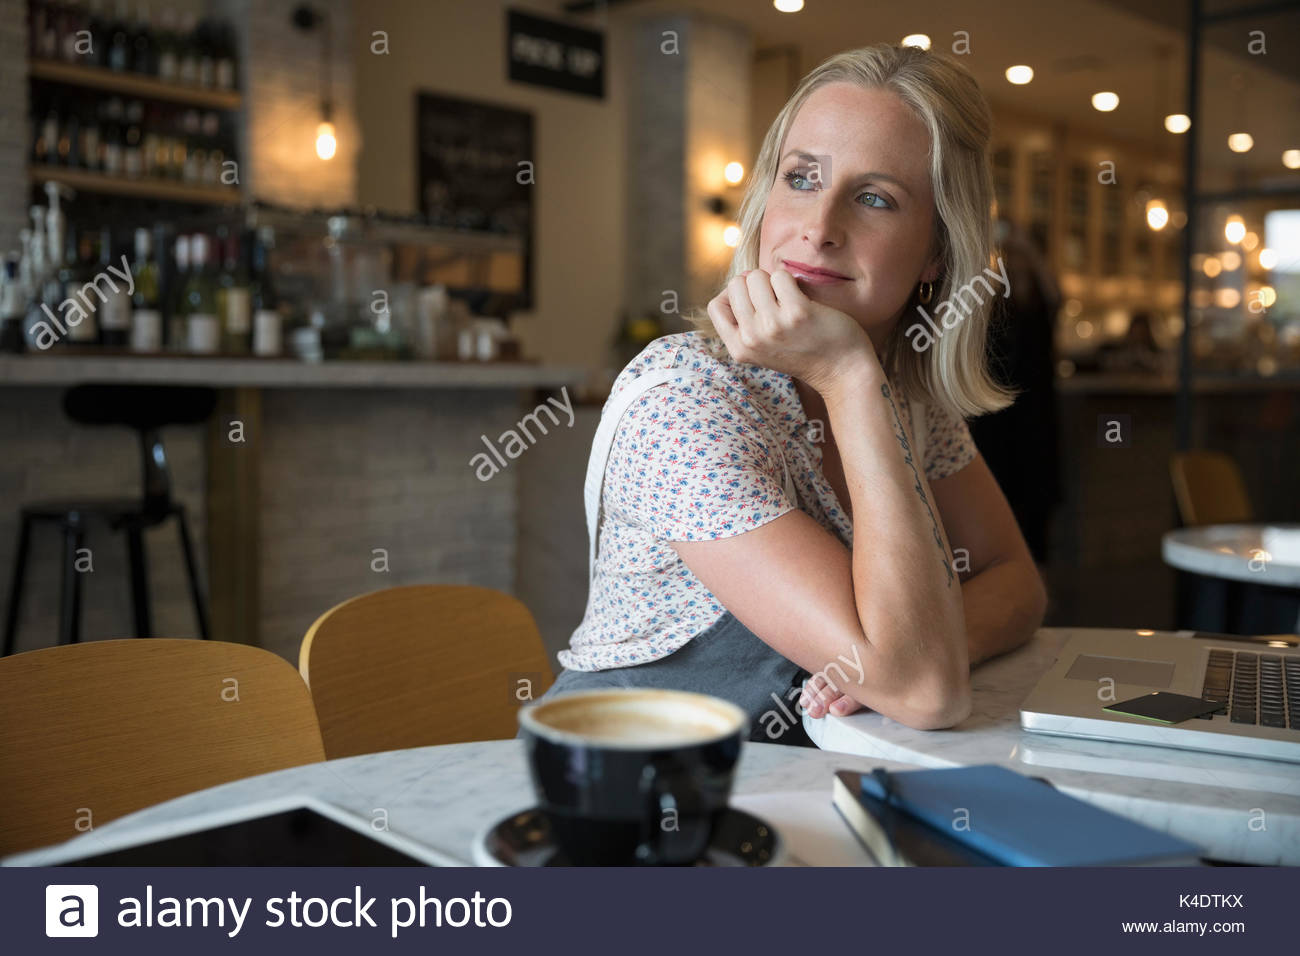 Smiling pensive woman using laptop, looking over shoulder in cafe Stock Photo